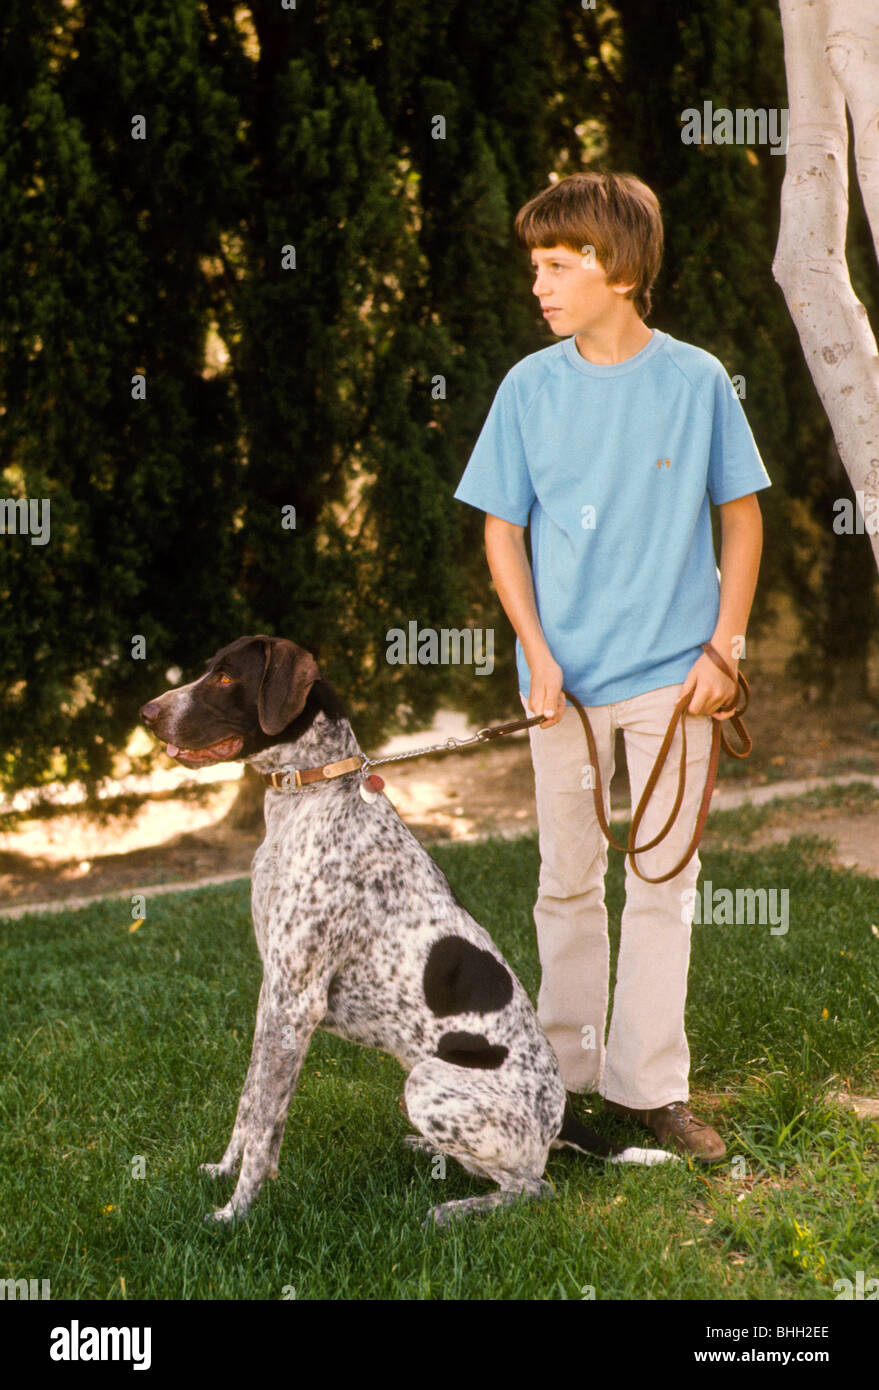 how to train older dog on leash